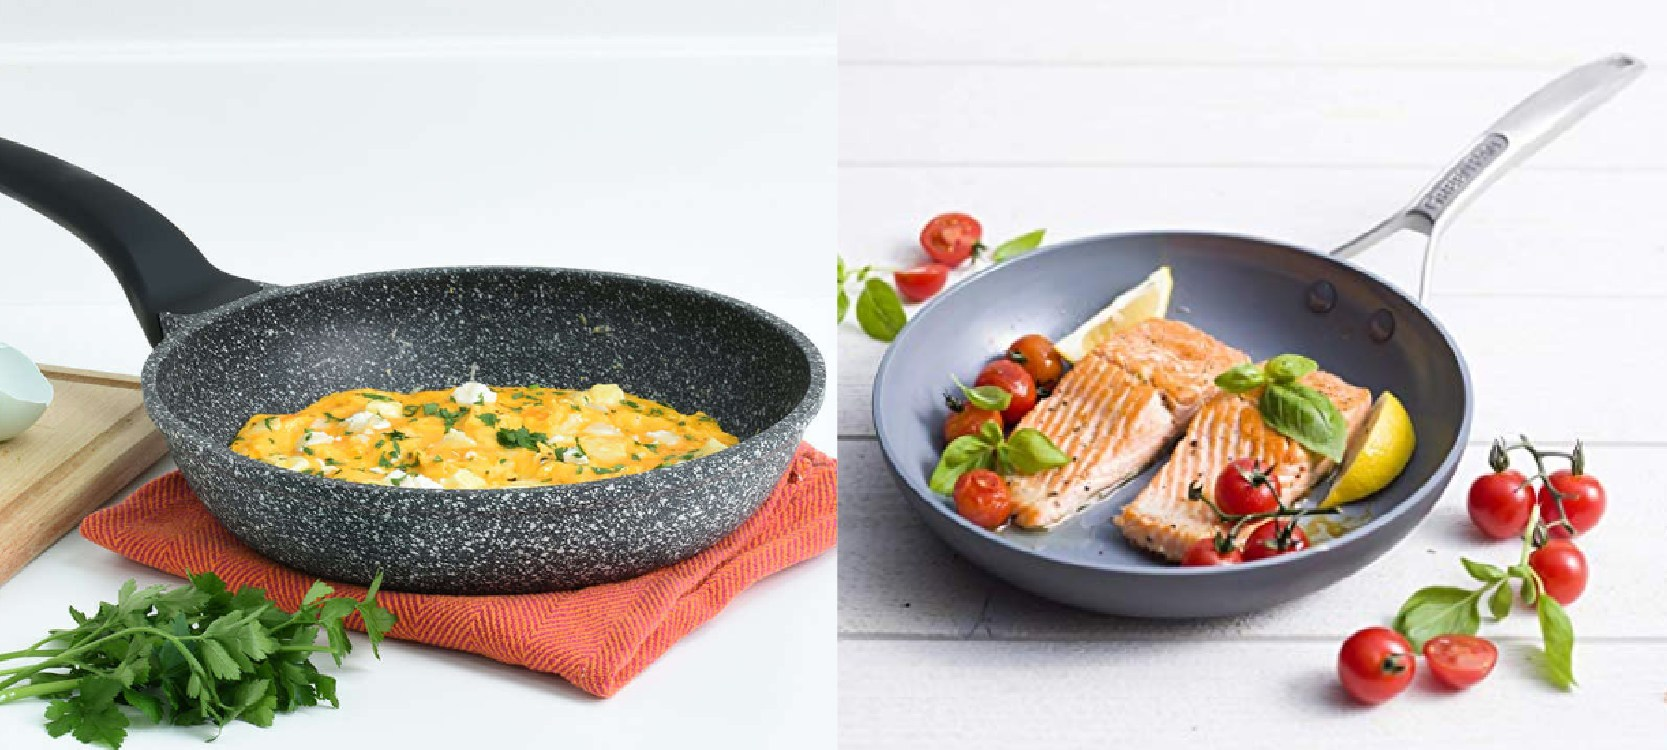 a granite pan with egg and the ceramic pan with salmon